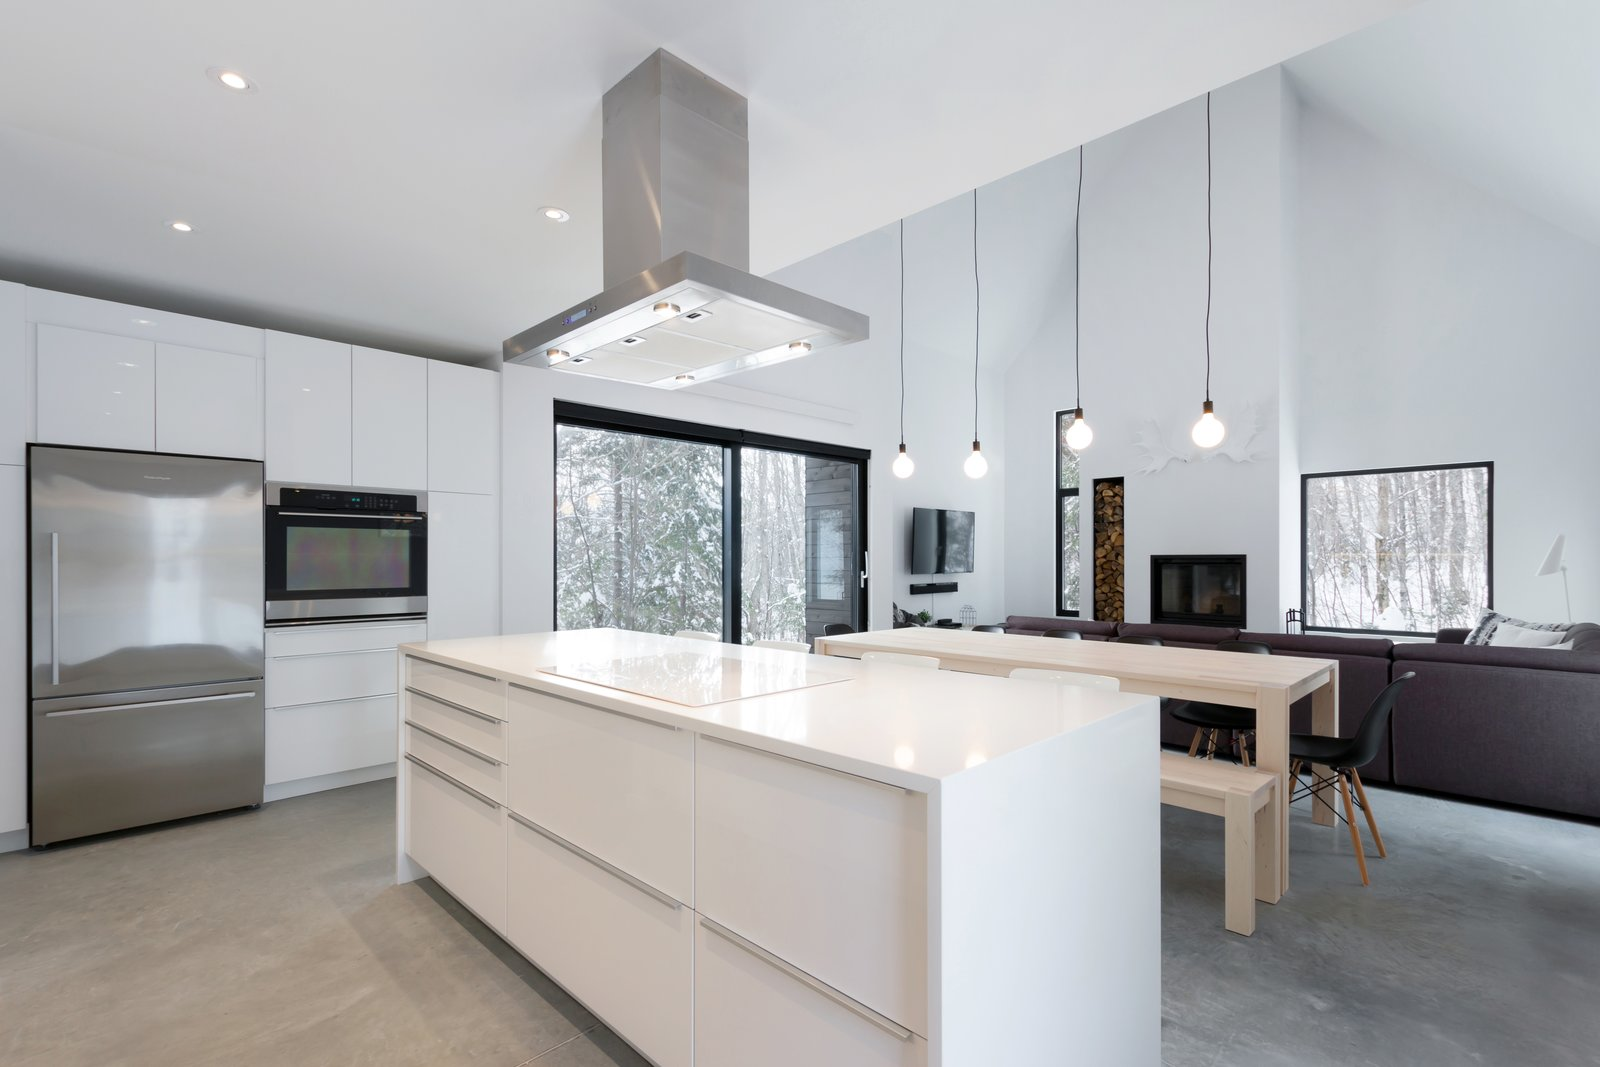 Kitchen, Concrete, Quartzite, Wall Oven, Range Hood, Cooktops, Refrigerator, Ceiling, and White  Kitchen Concrete Refrigerator Quartzite Photos